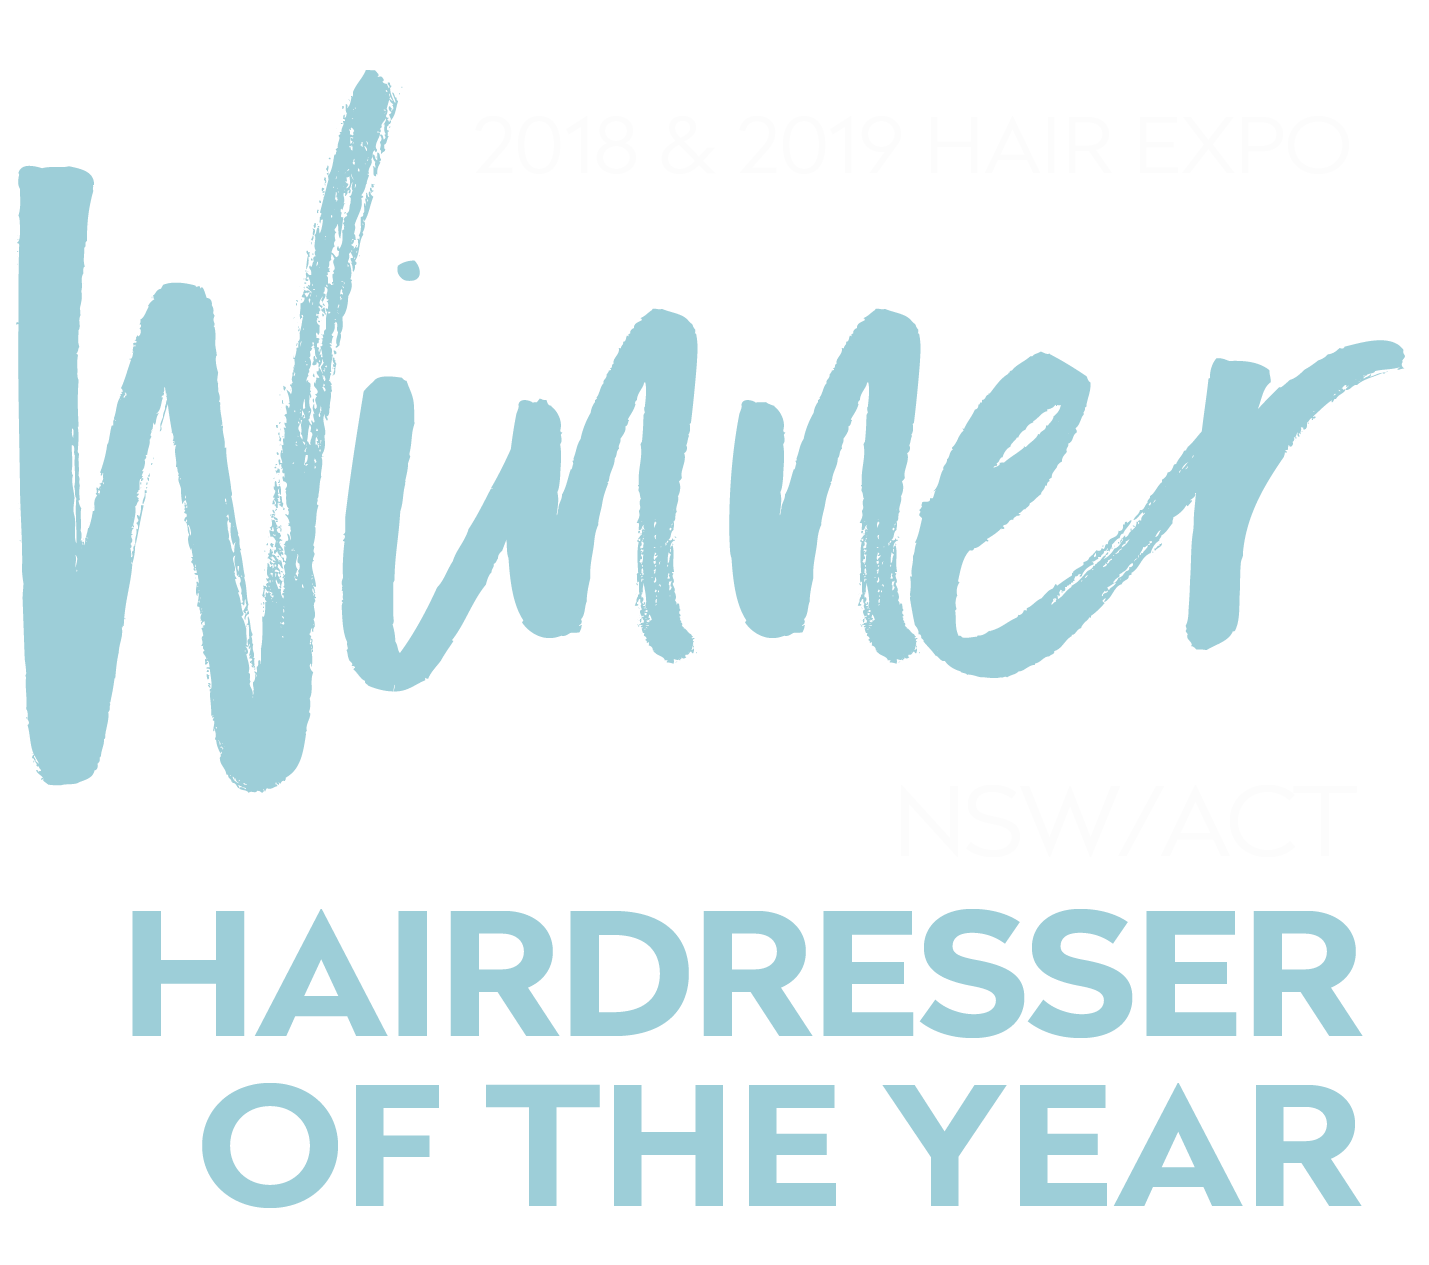 Hair Expo NSW ACT Hairdresser of the Year 2019